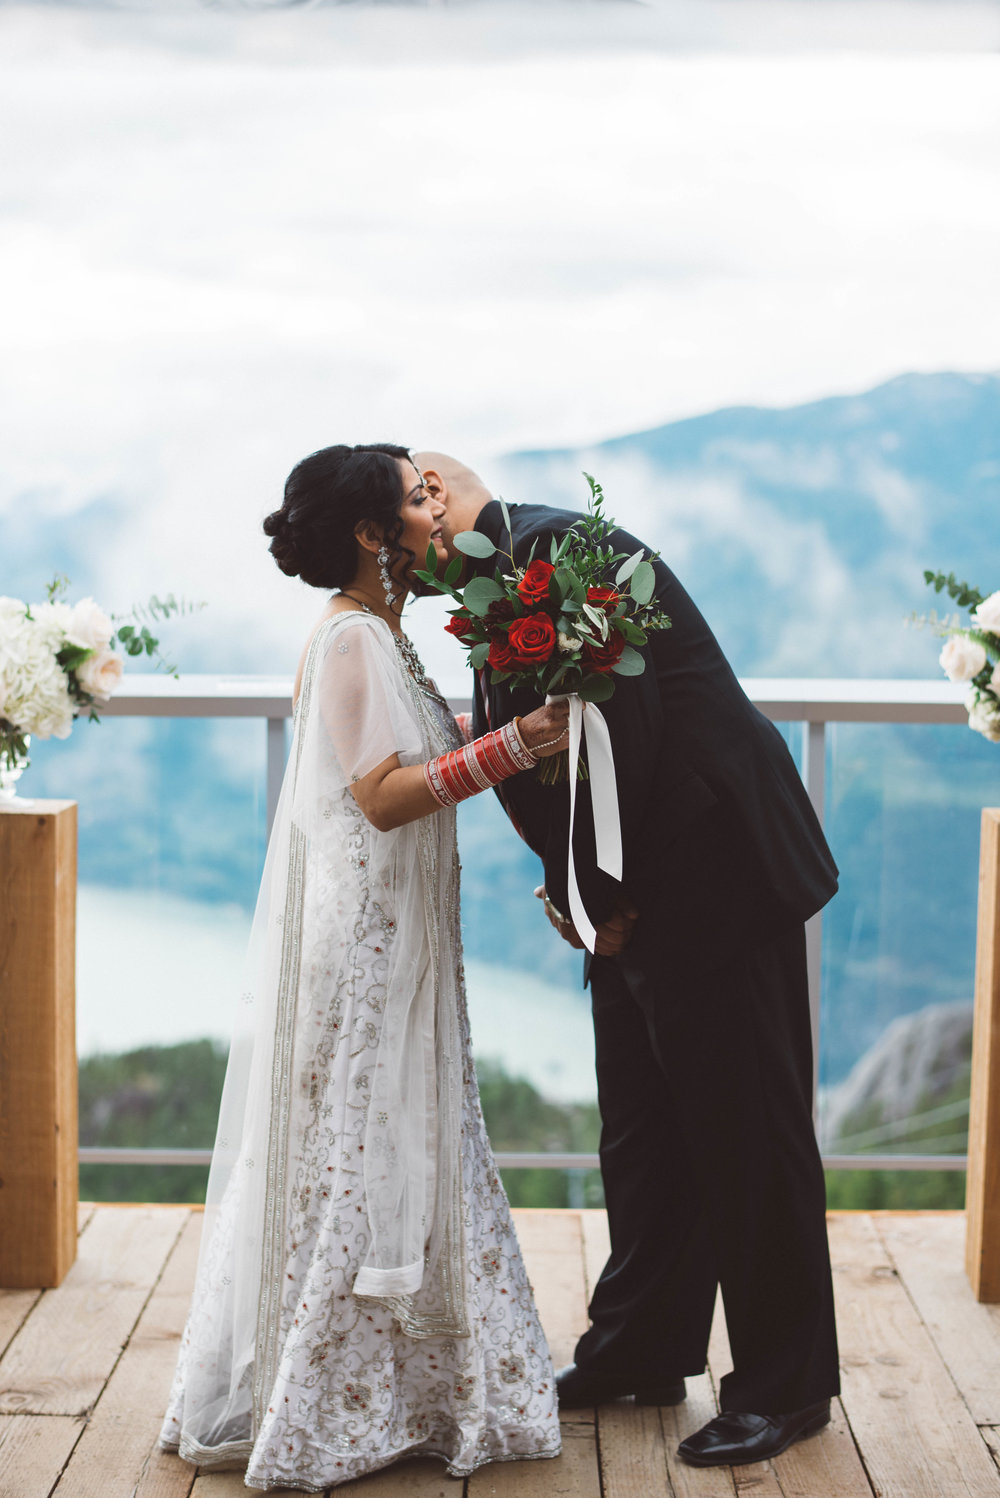 manny and raj sea to sky gondola elopement squamish pacific north west west coast fine art wedding vancouver photographer jo and bo photography